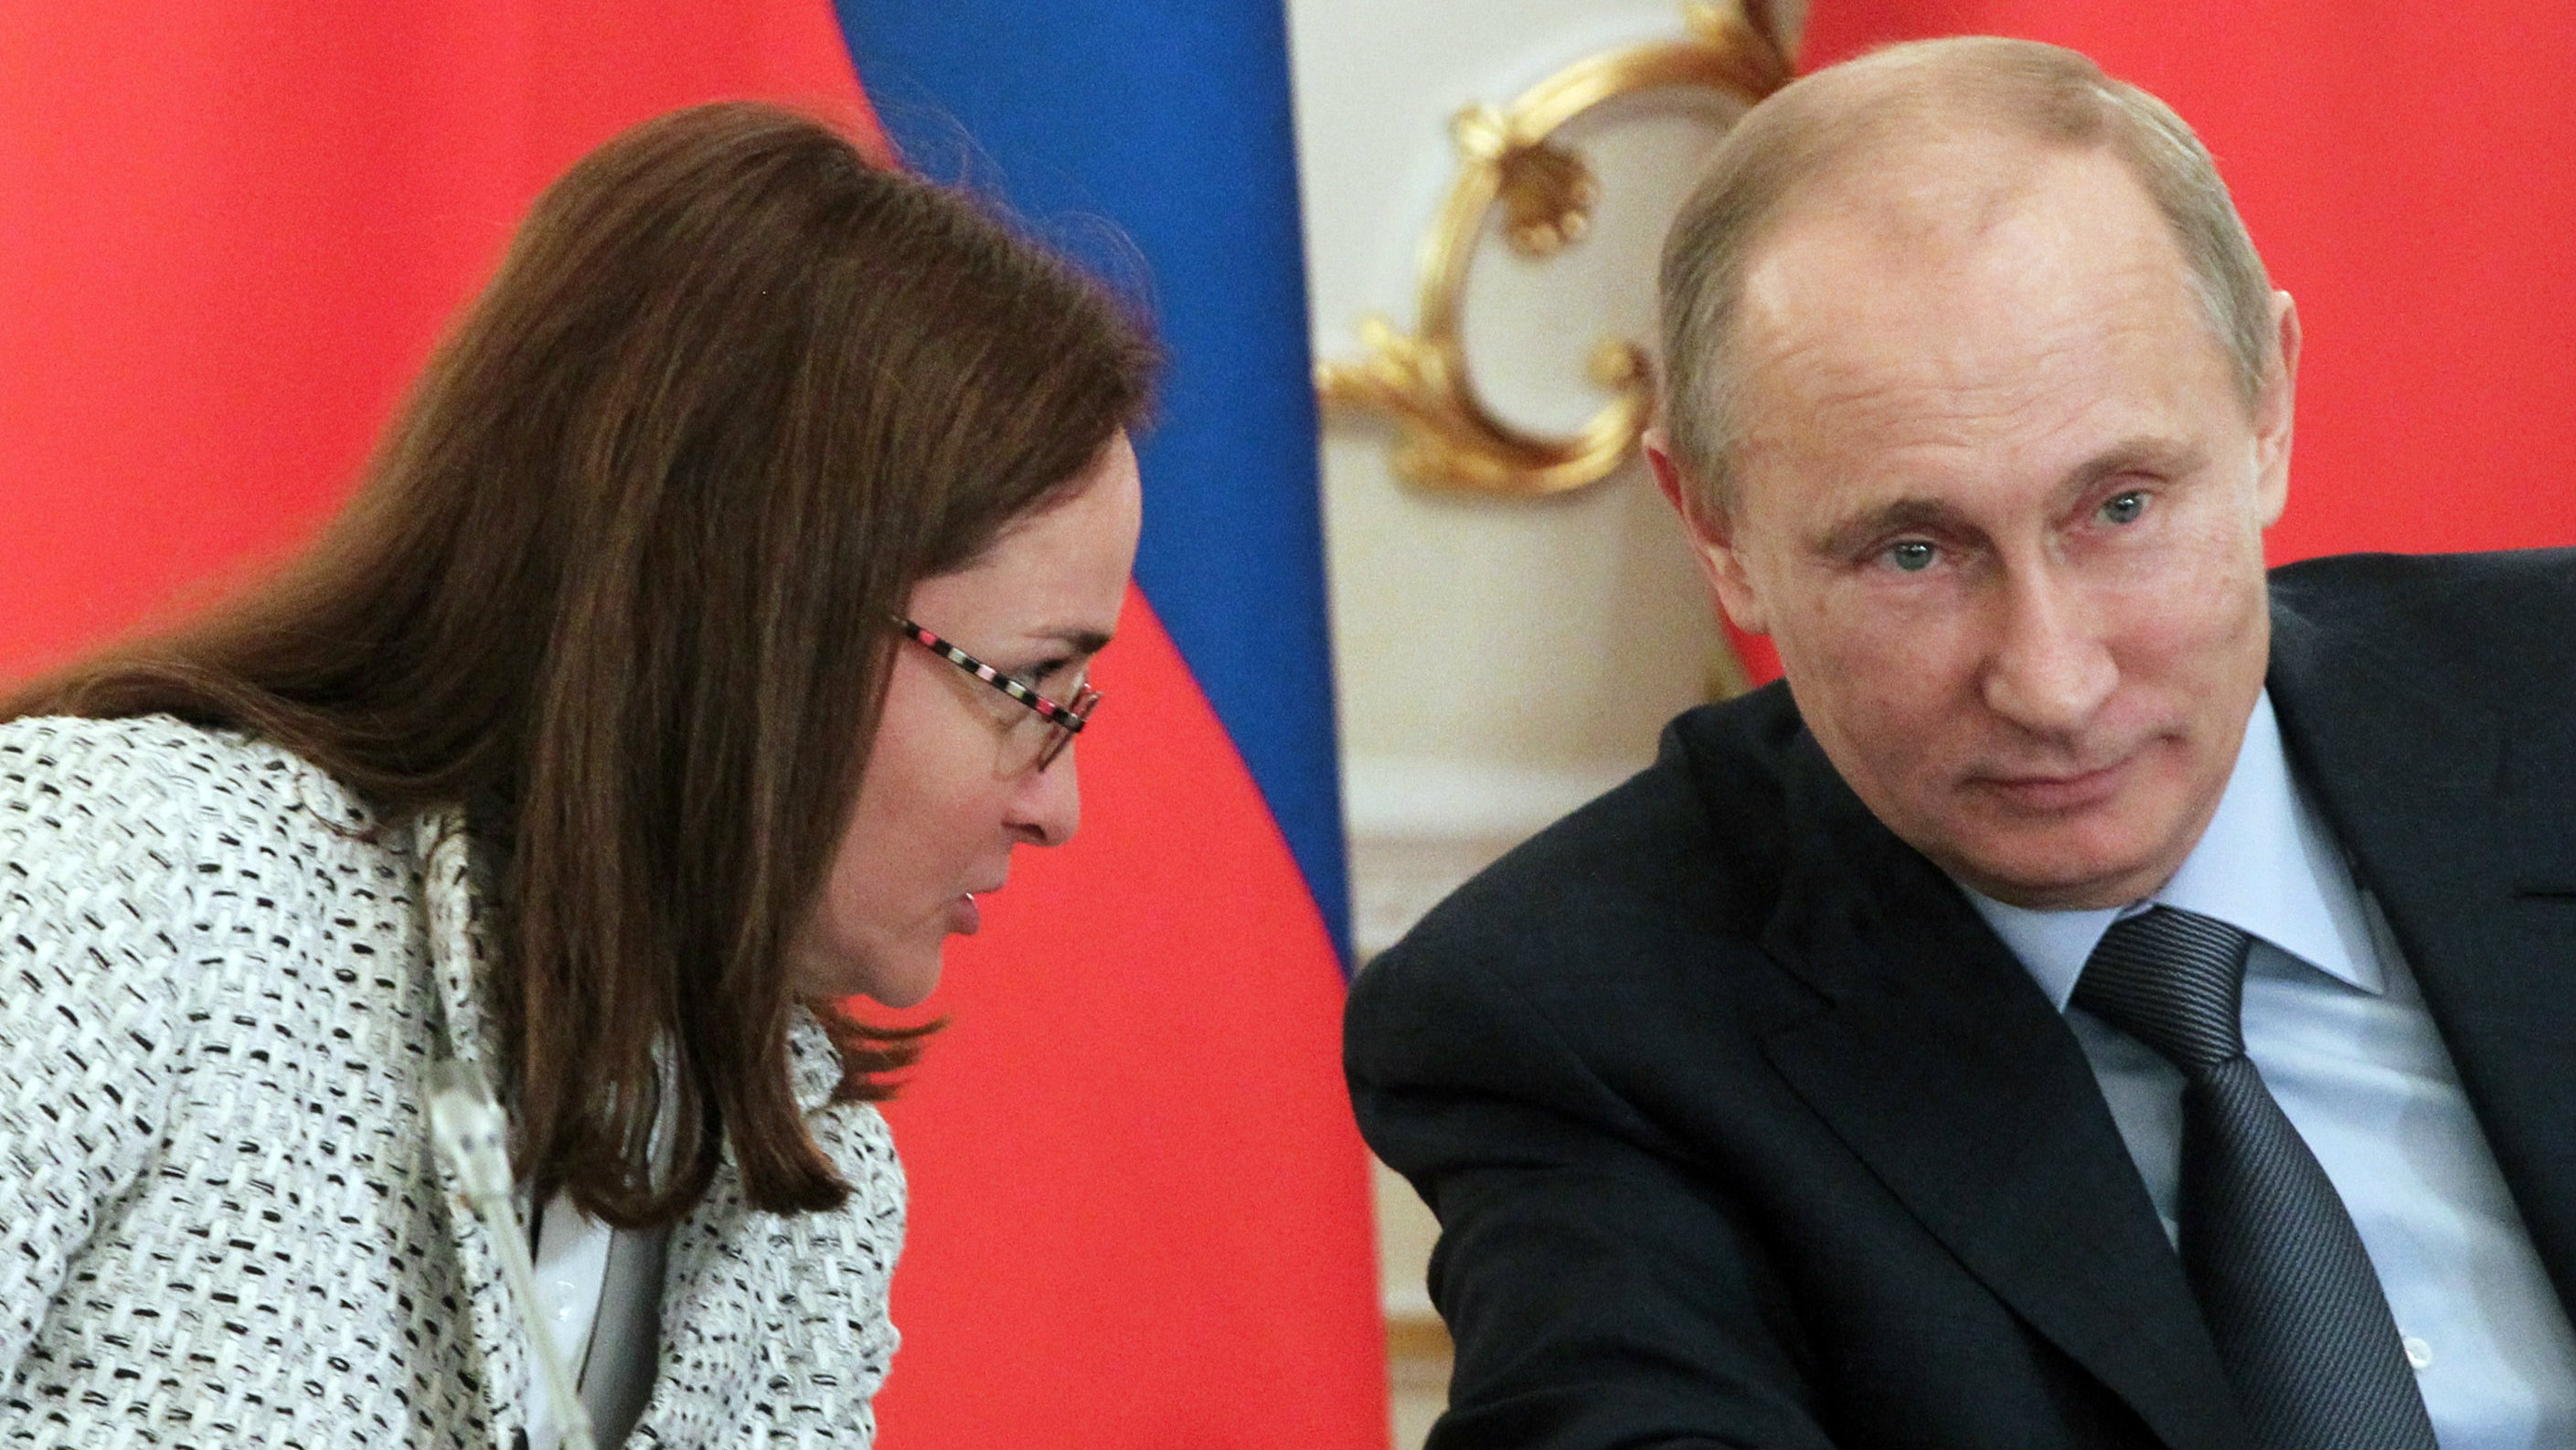 Russian President Vladimir Putin, right, listens to his aide Elvira Nabiullina